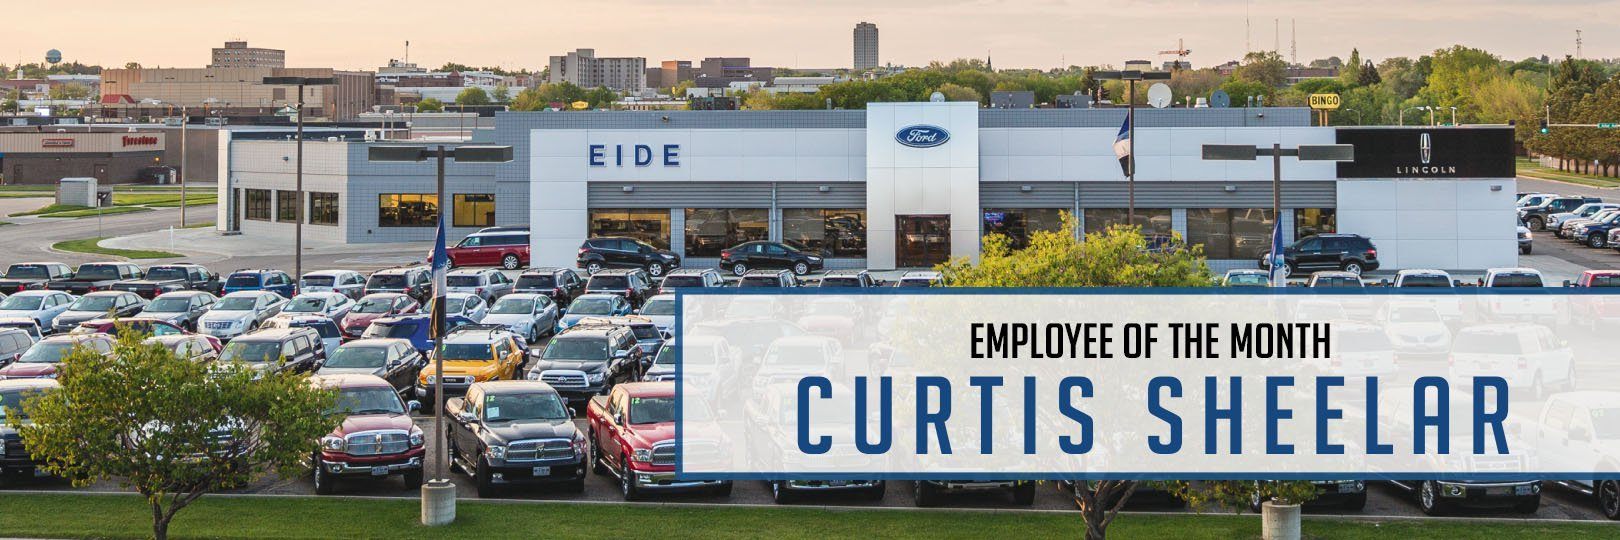 Eide Ford's November employee of the month is Curtis Sheelar!